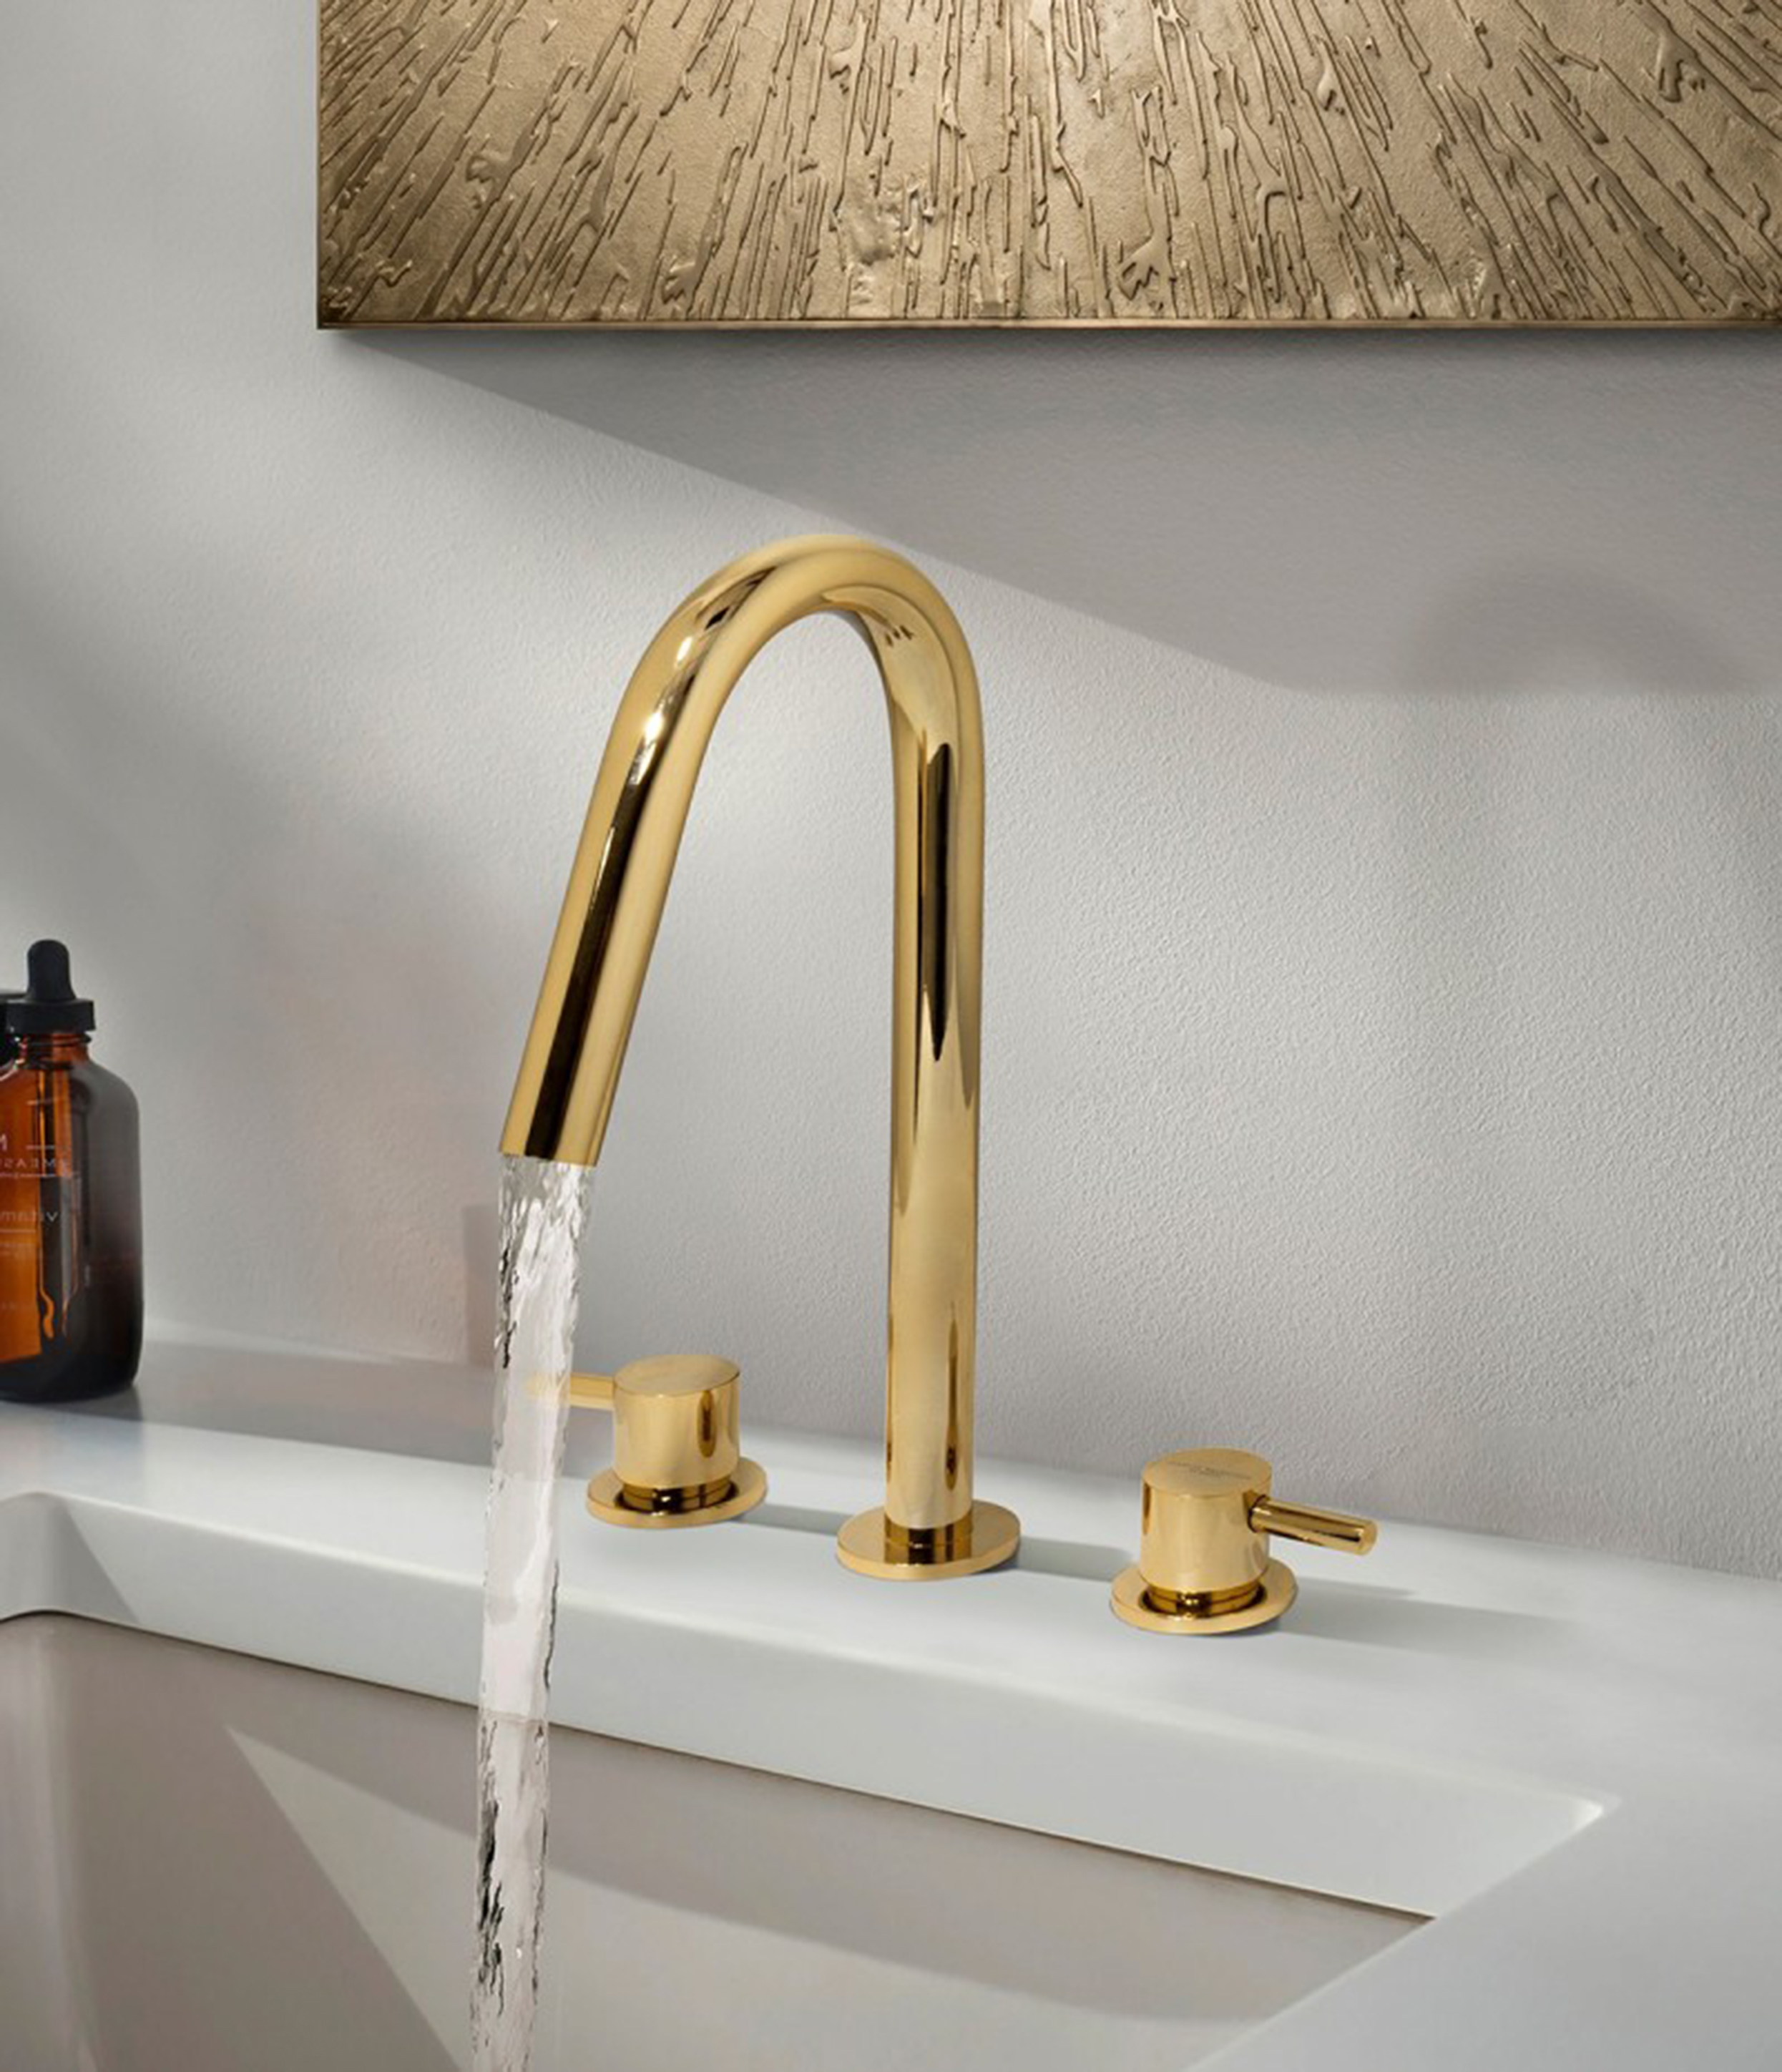 Sophisticated Taps to Enhance your Bathroom  Sophisticated Taps Sophisticated Taps to Enhance your Bathroom bathroom decor detail with origin three hole mixer tap 1